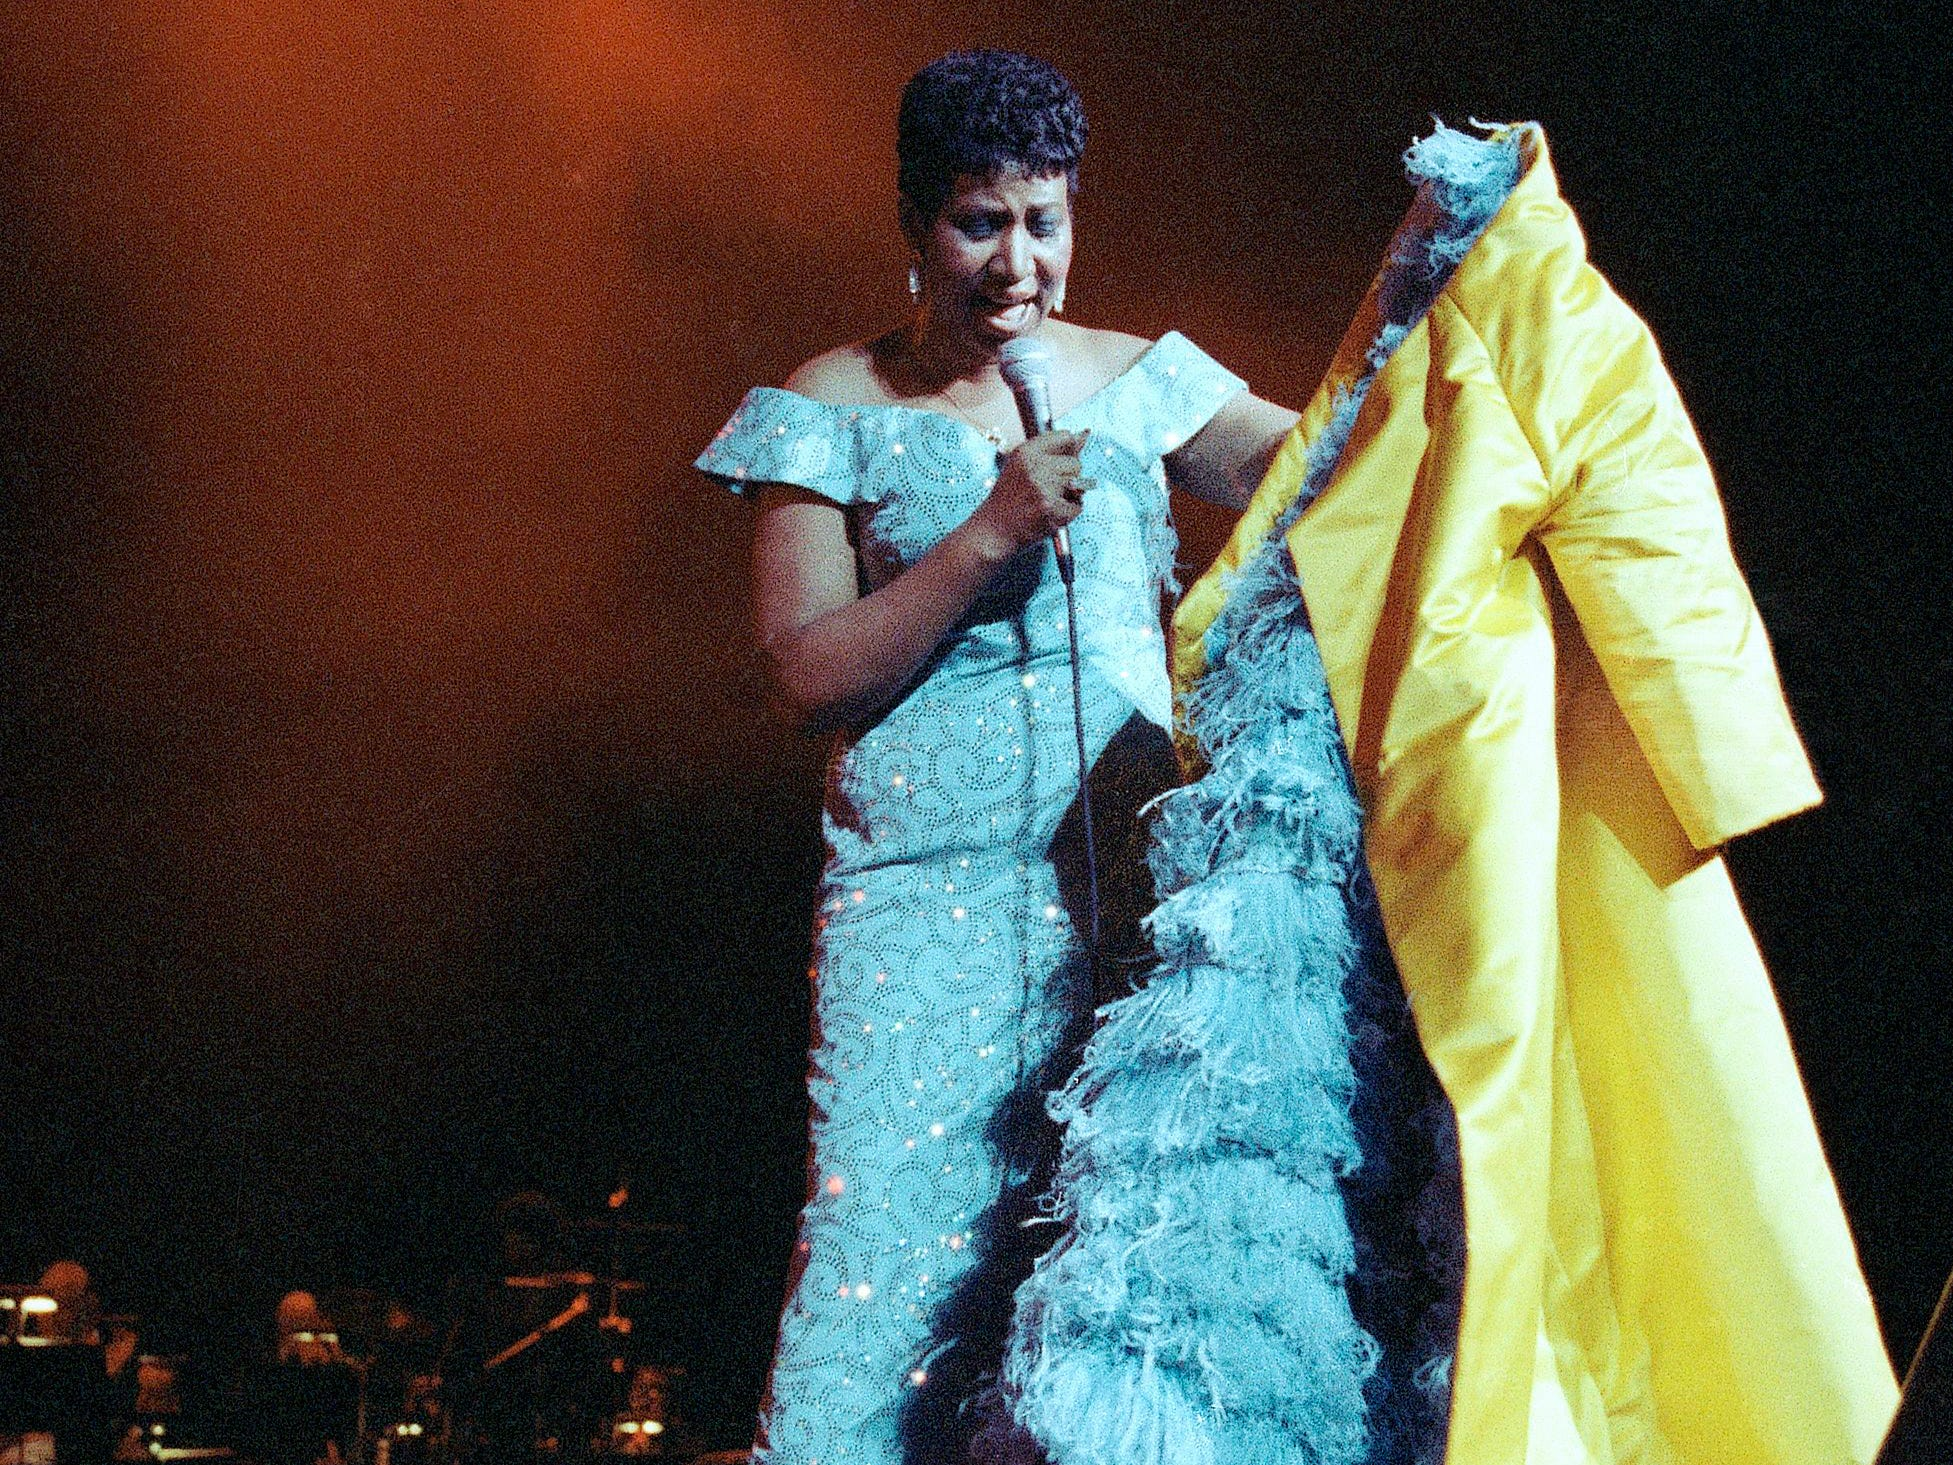 Aretha Franklin performs at Radio City Music Hall in New York, July 5, 1989. (AP Photo/Mario Suriani)